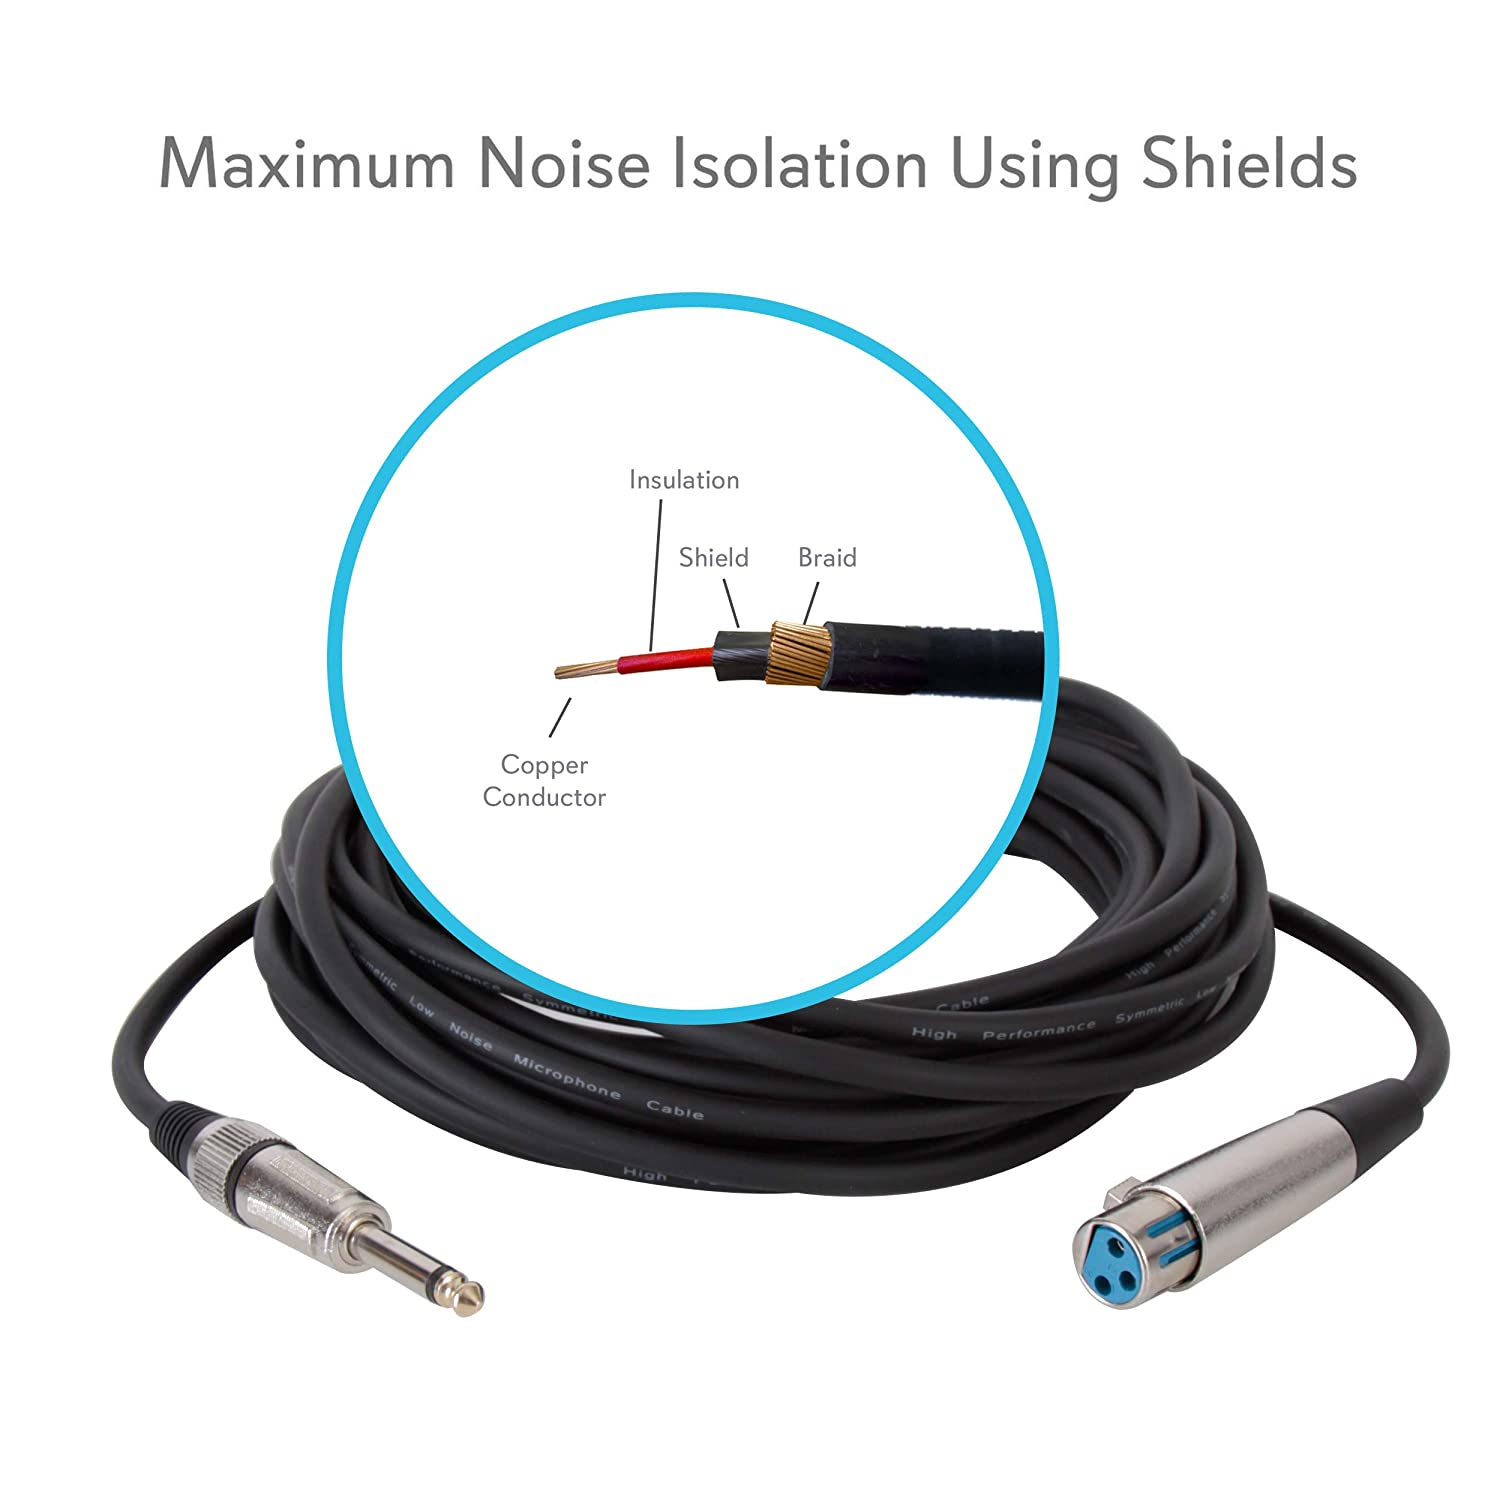 1 4 To Xlr Audio Connection Cord Inch Phono Wiring Jack Acoustic Female 15 Ft 12 Gauge Black Heavy Duty Professional Speaker Cable Wire Delivers